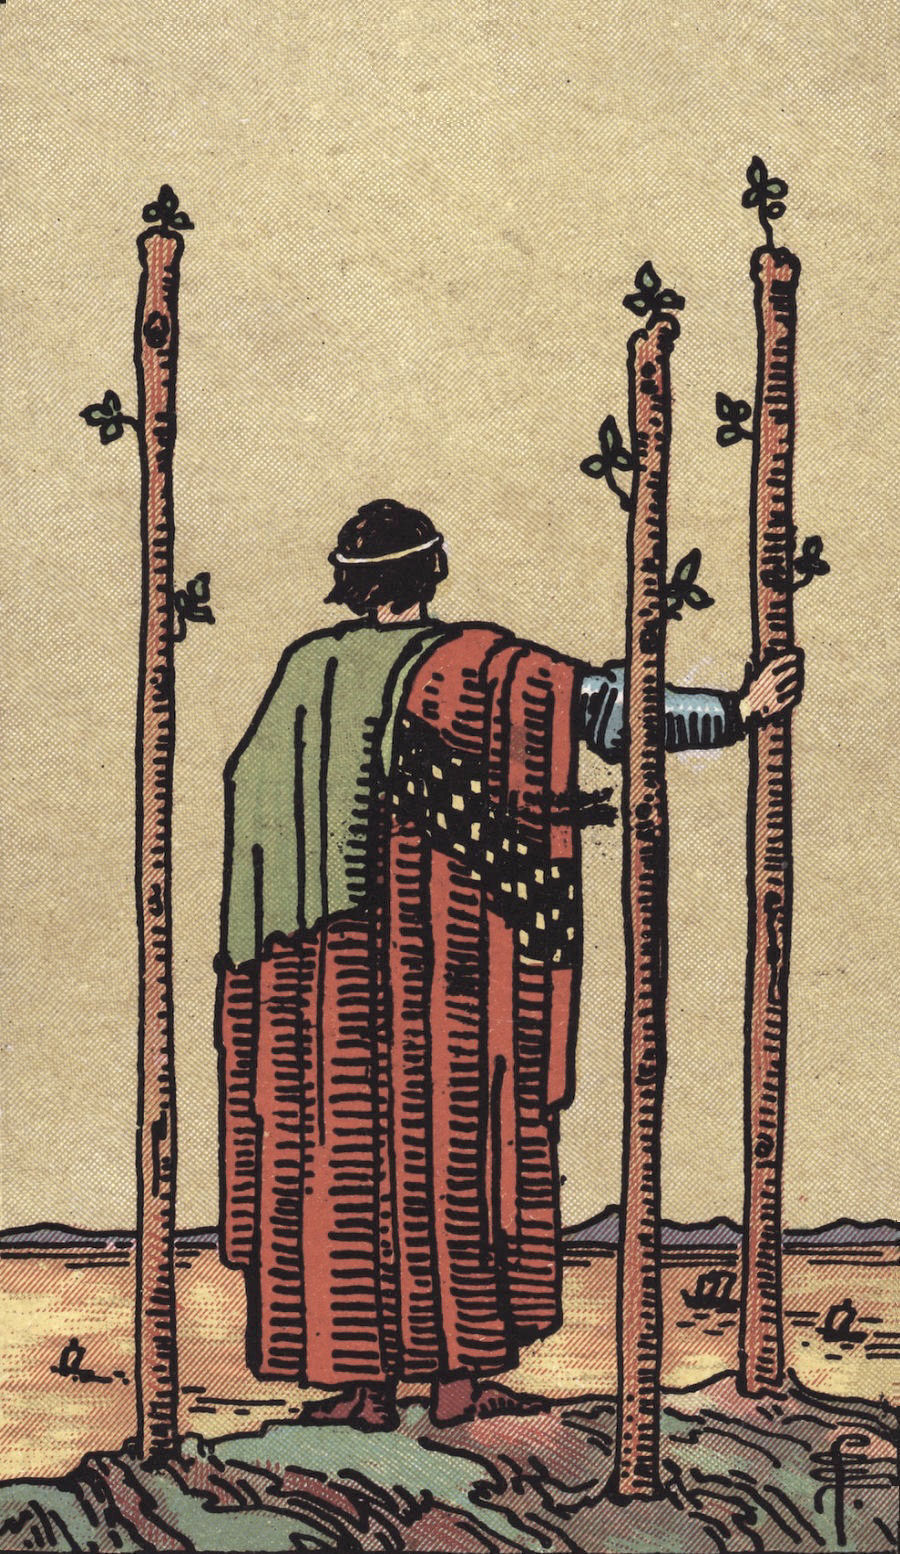 Rider Waite Smith Three of Wands Tarot Card Meaning